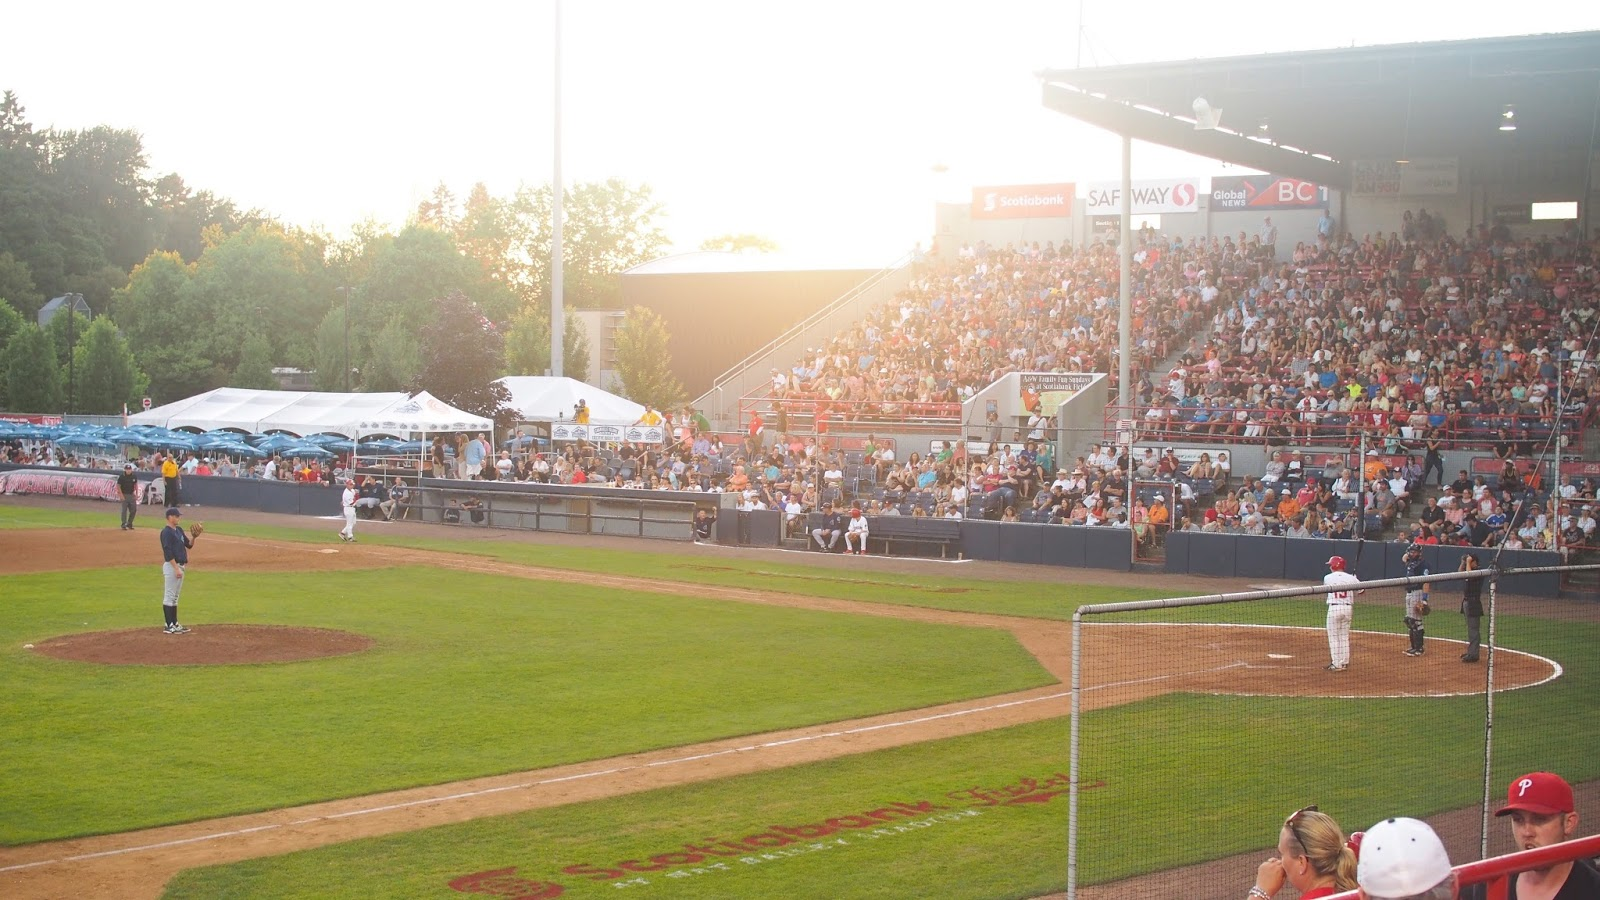 Vancouver Canadians Baseball | Scotiabank Field at Nat Bailey Stadium